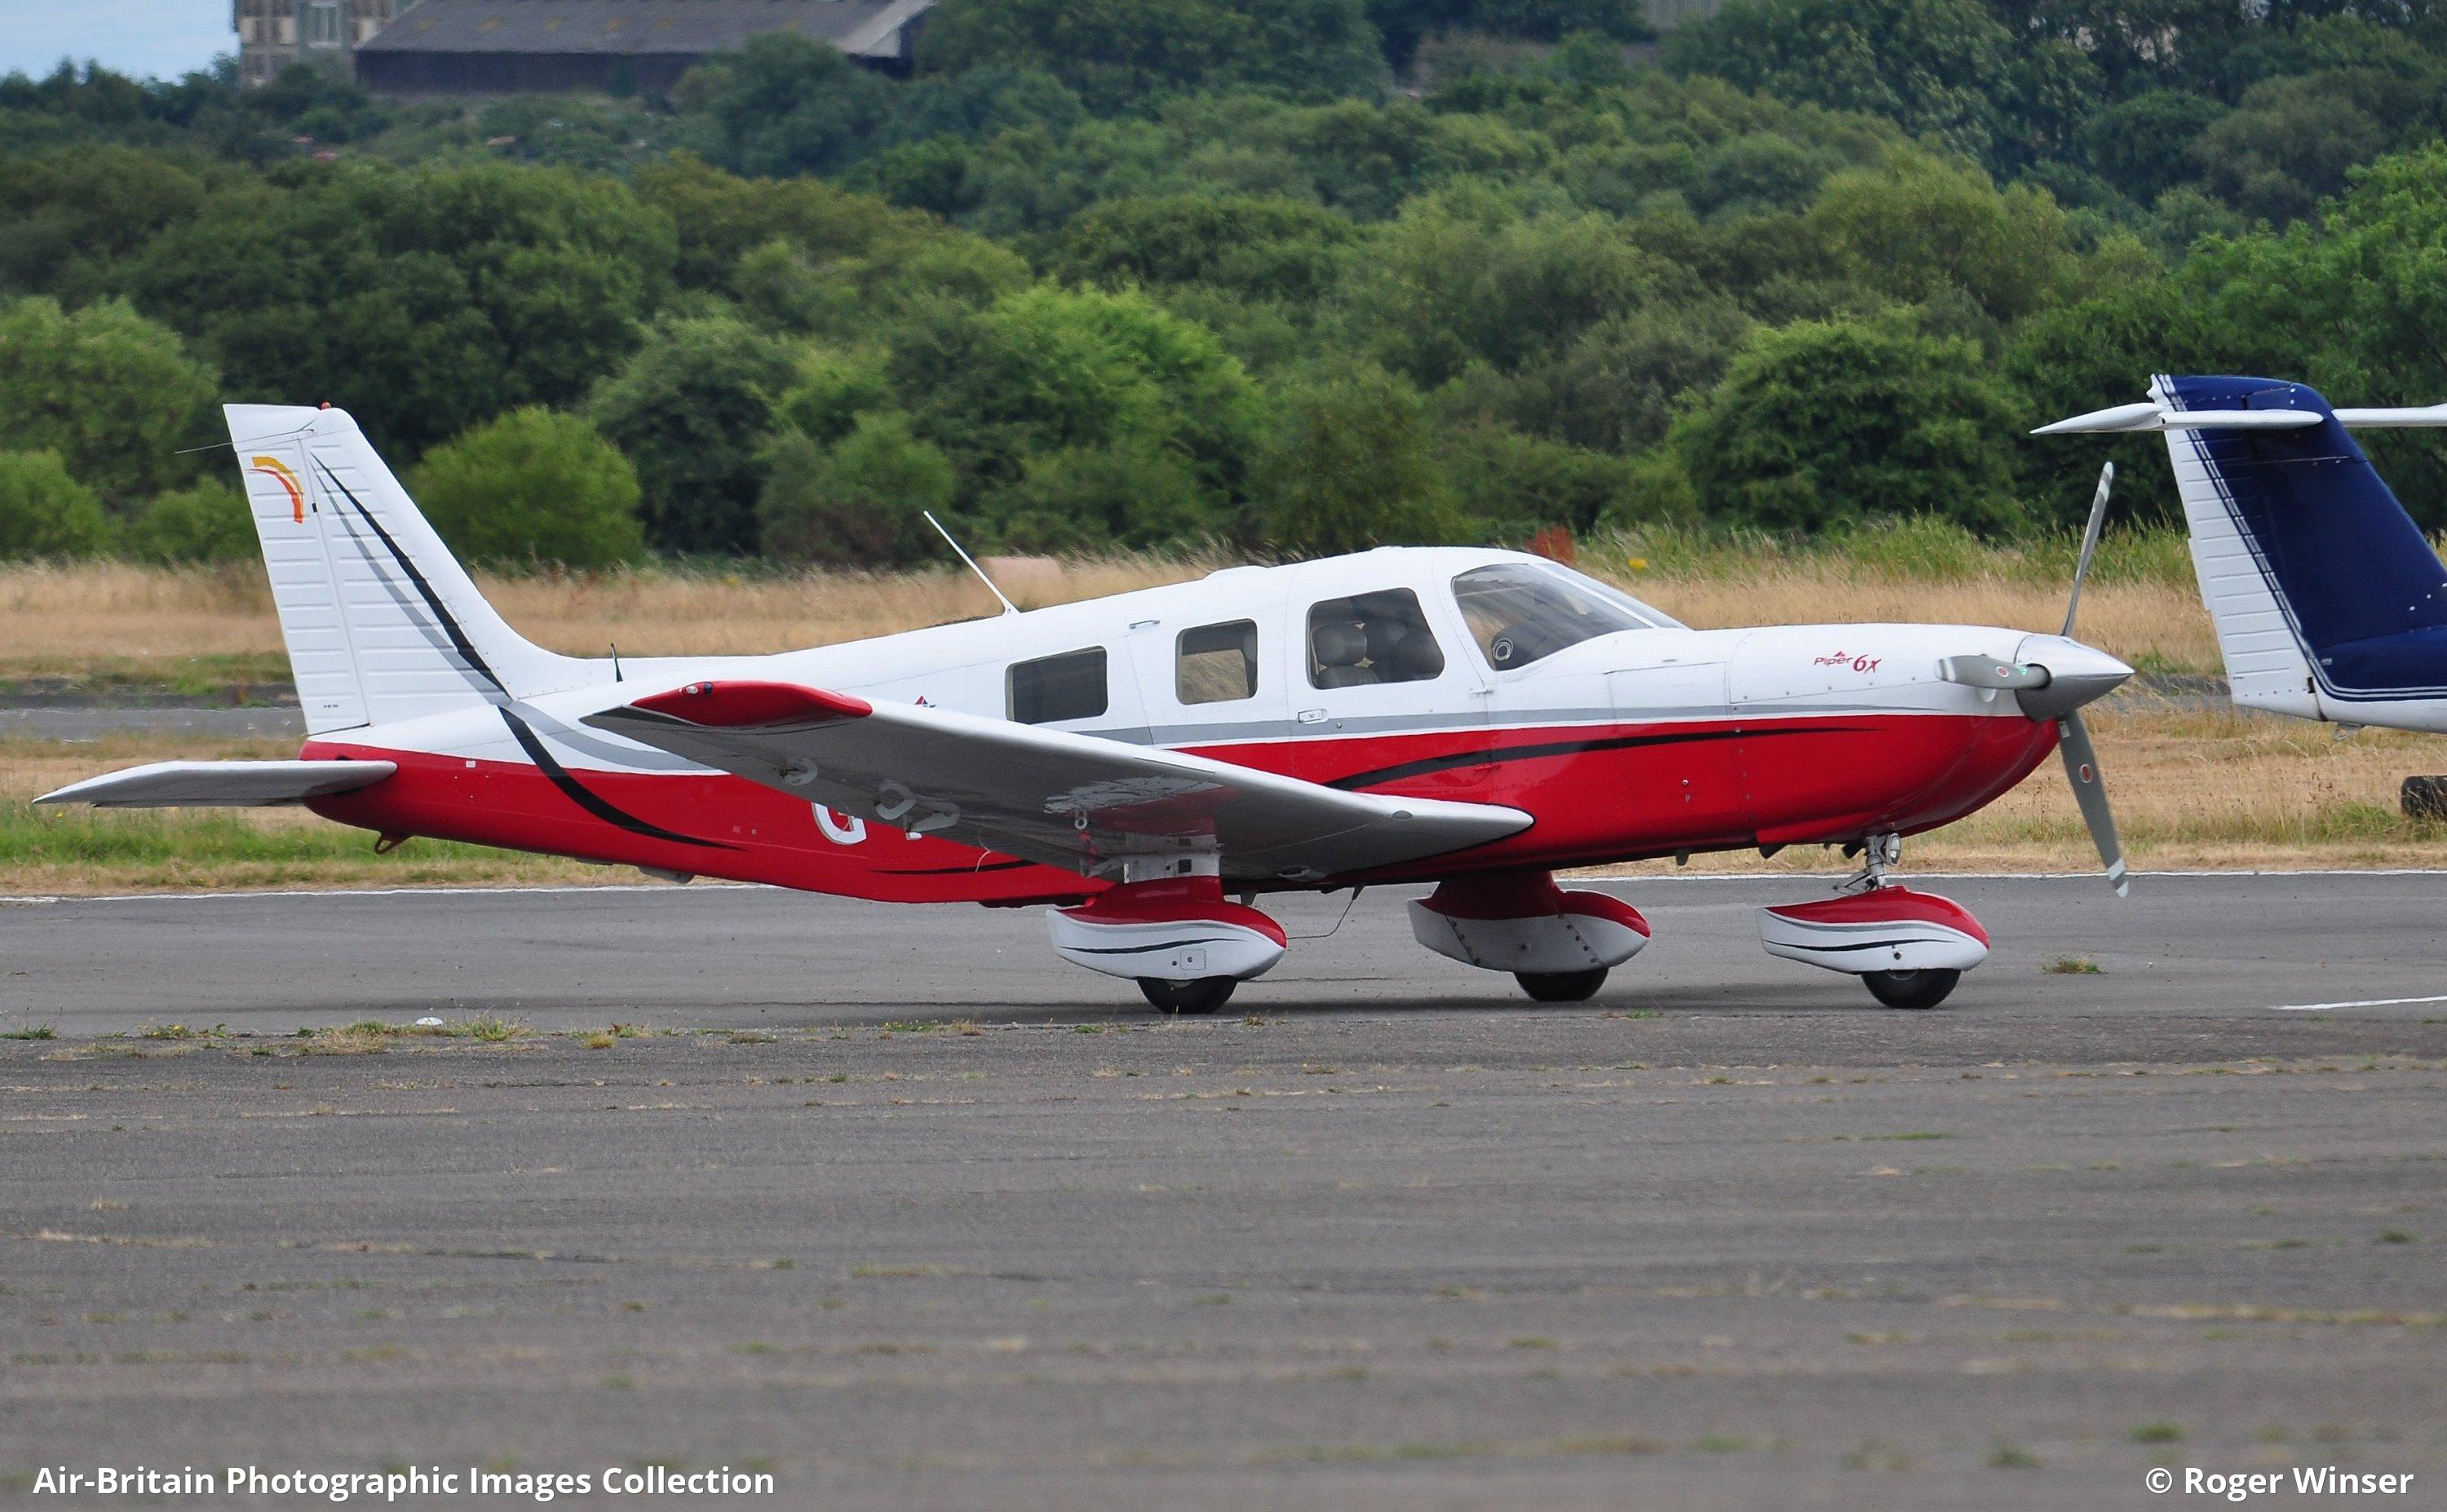 Piper PA-32-301FT Piper 6X · Private · Swansea (Fairwood Common) (SWS /  EGFH), UK - Wales · Roger Winser - 20/07/2018